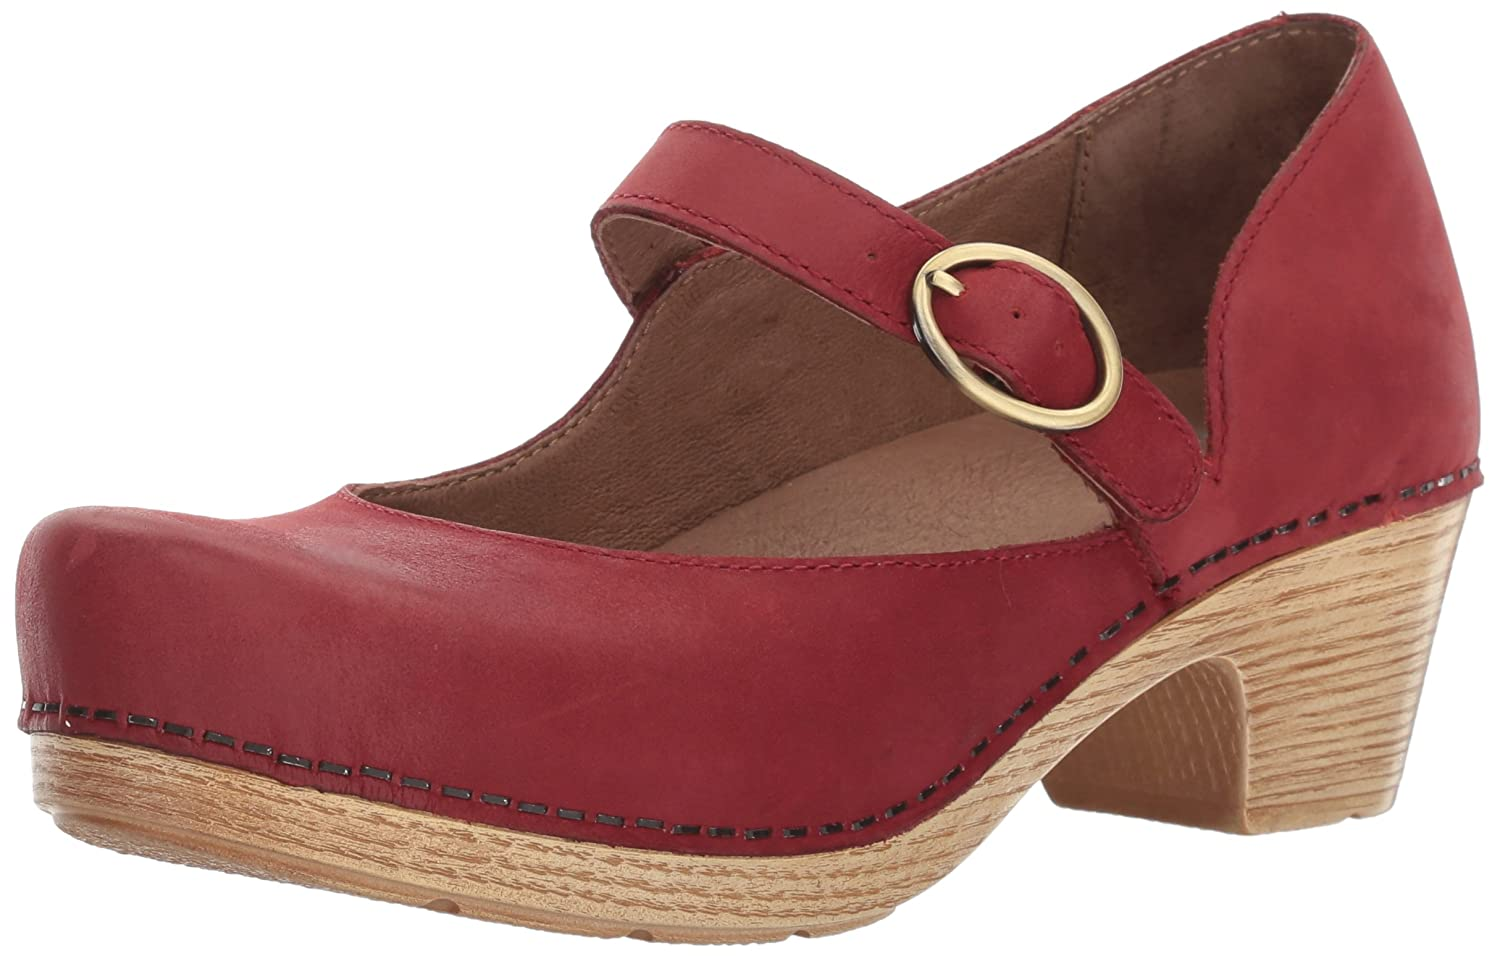 Dansko Women's Missy Mary Jane Flat B01N5K9E75 40 EU/9.5-10 M US|Red Veg